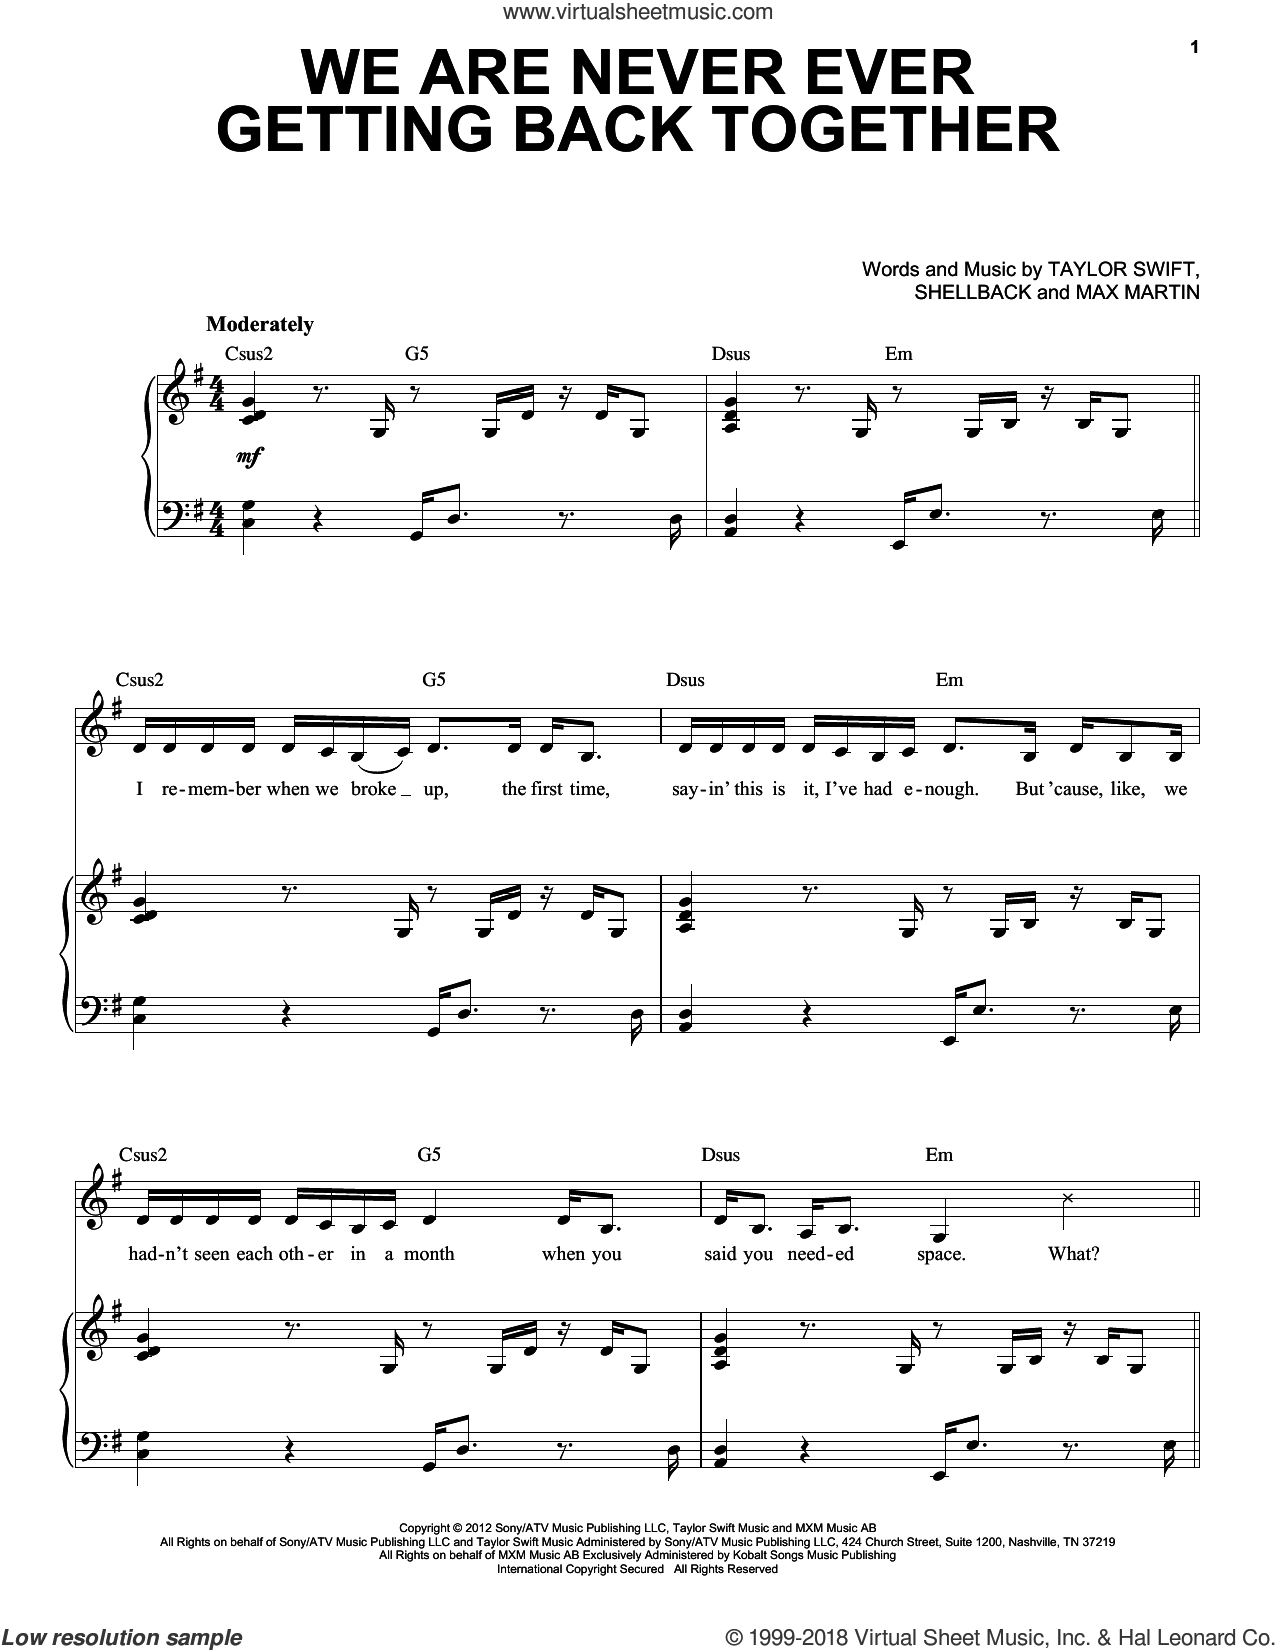 We Are Never Ever Getting Back Together sheet music for voice and piano by Shellback, Max Martin and Taylor Swift. Score Image Preview.